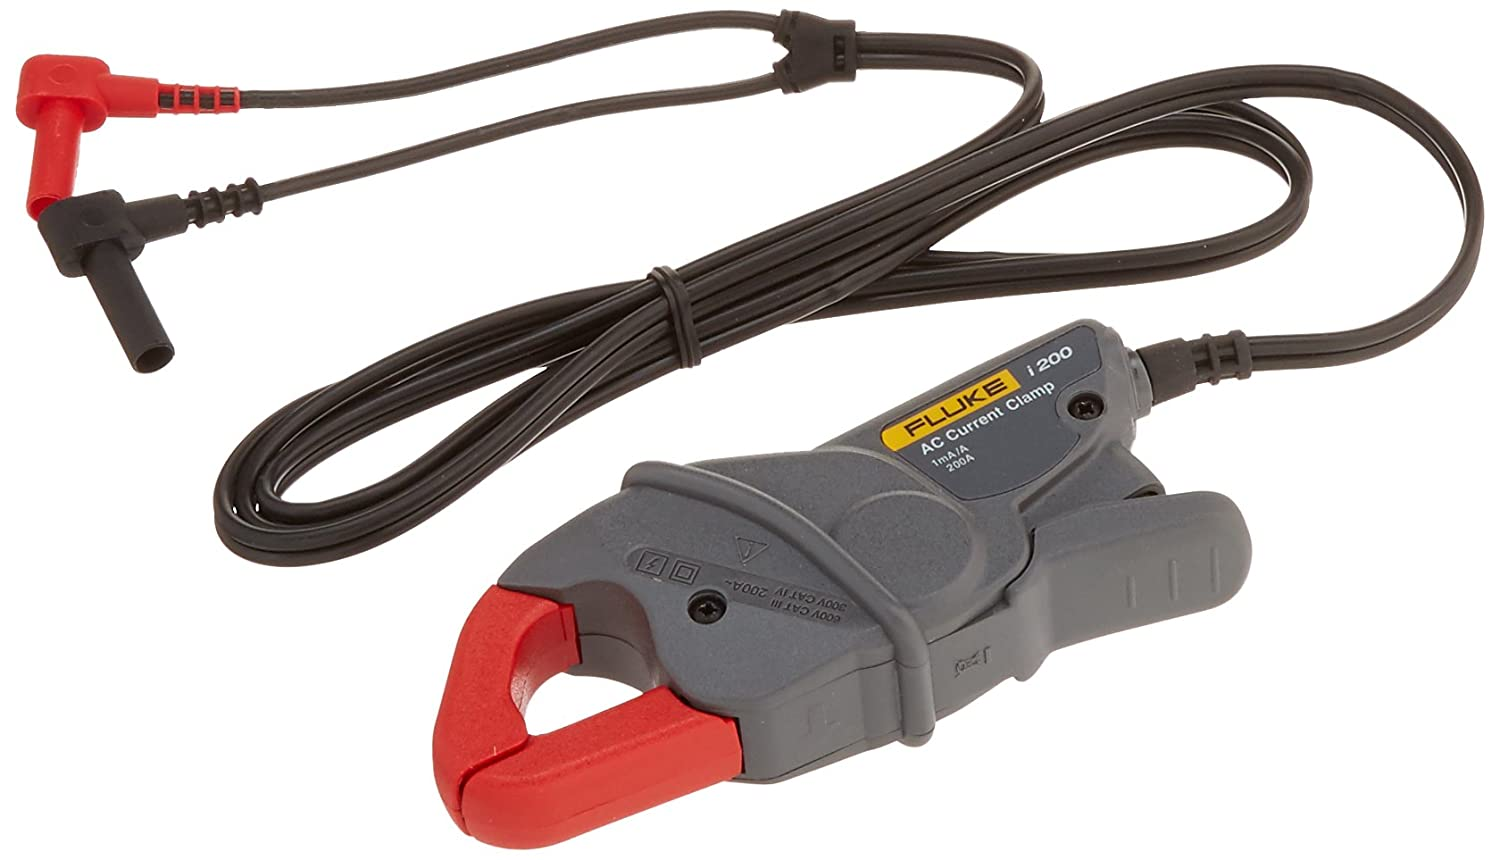 Fluke I200 AC Current Clamp, 600V AC Voltage, 200A AC Current: Fluke  Multimeter: Amazon.com: Industrial & Scientific